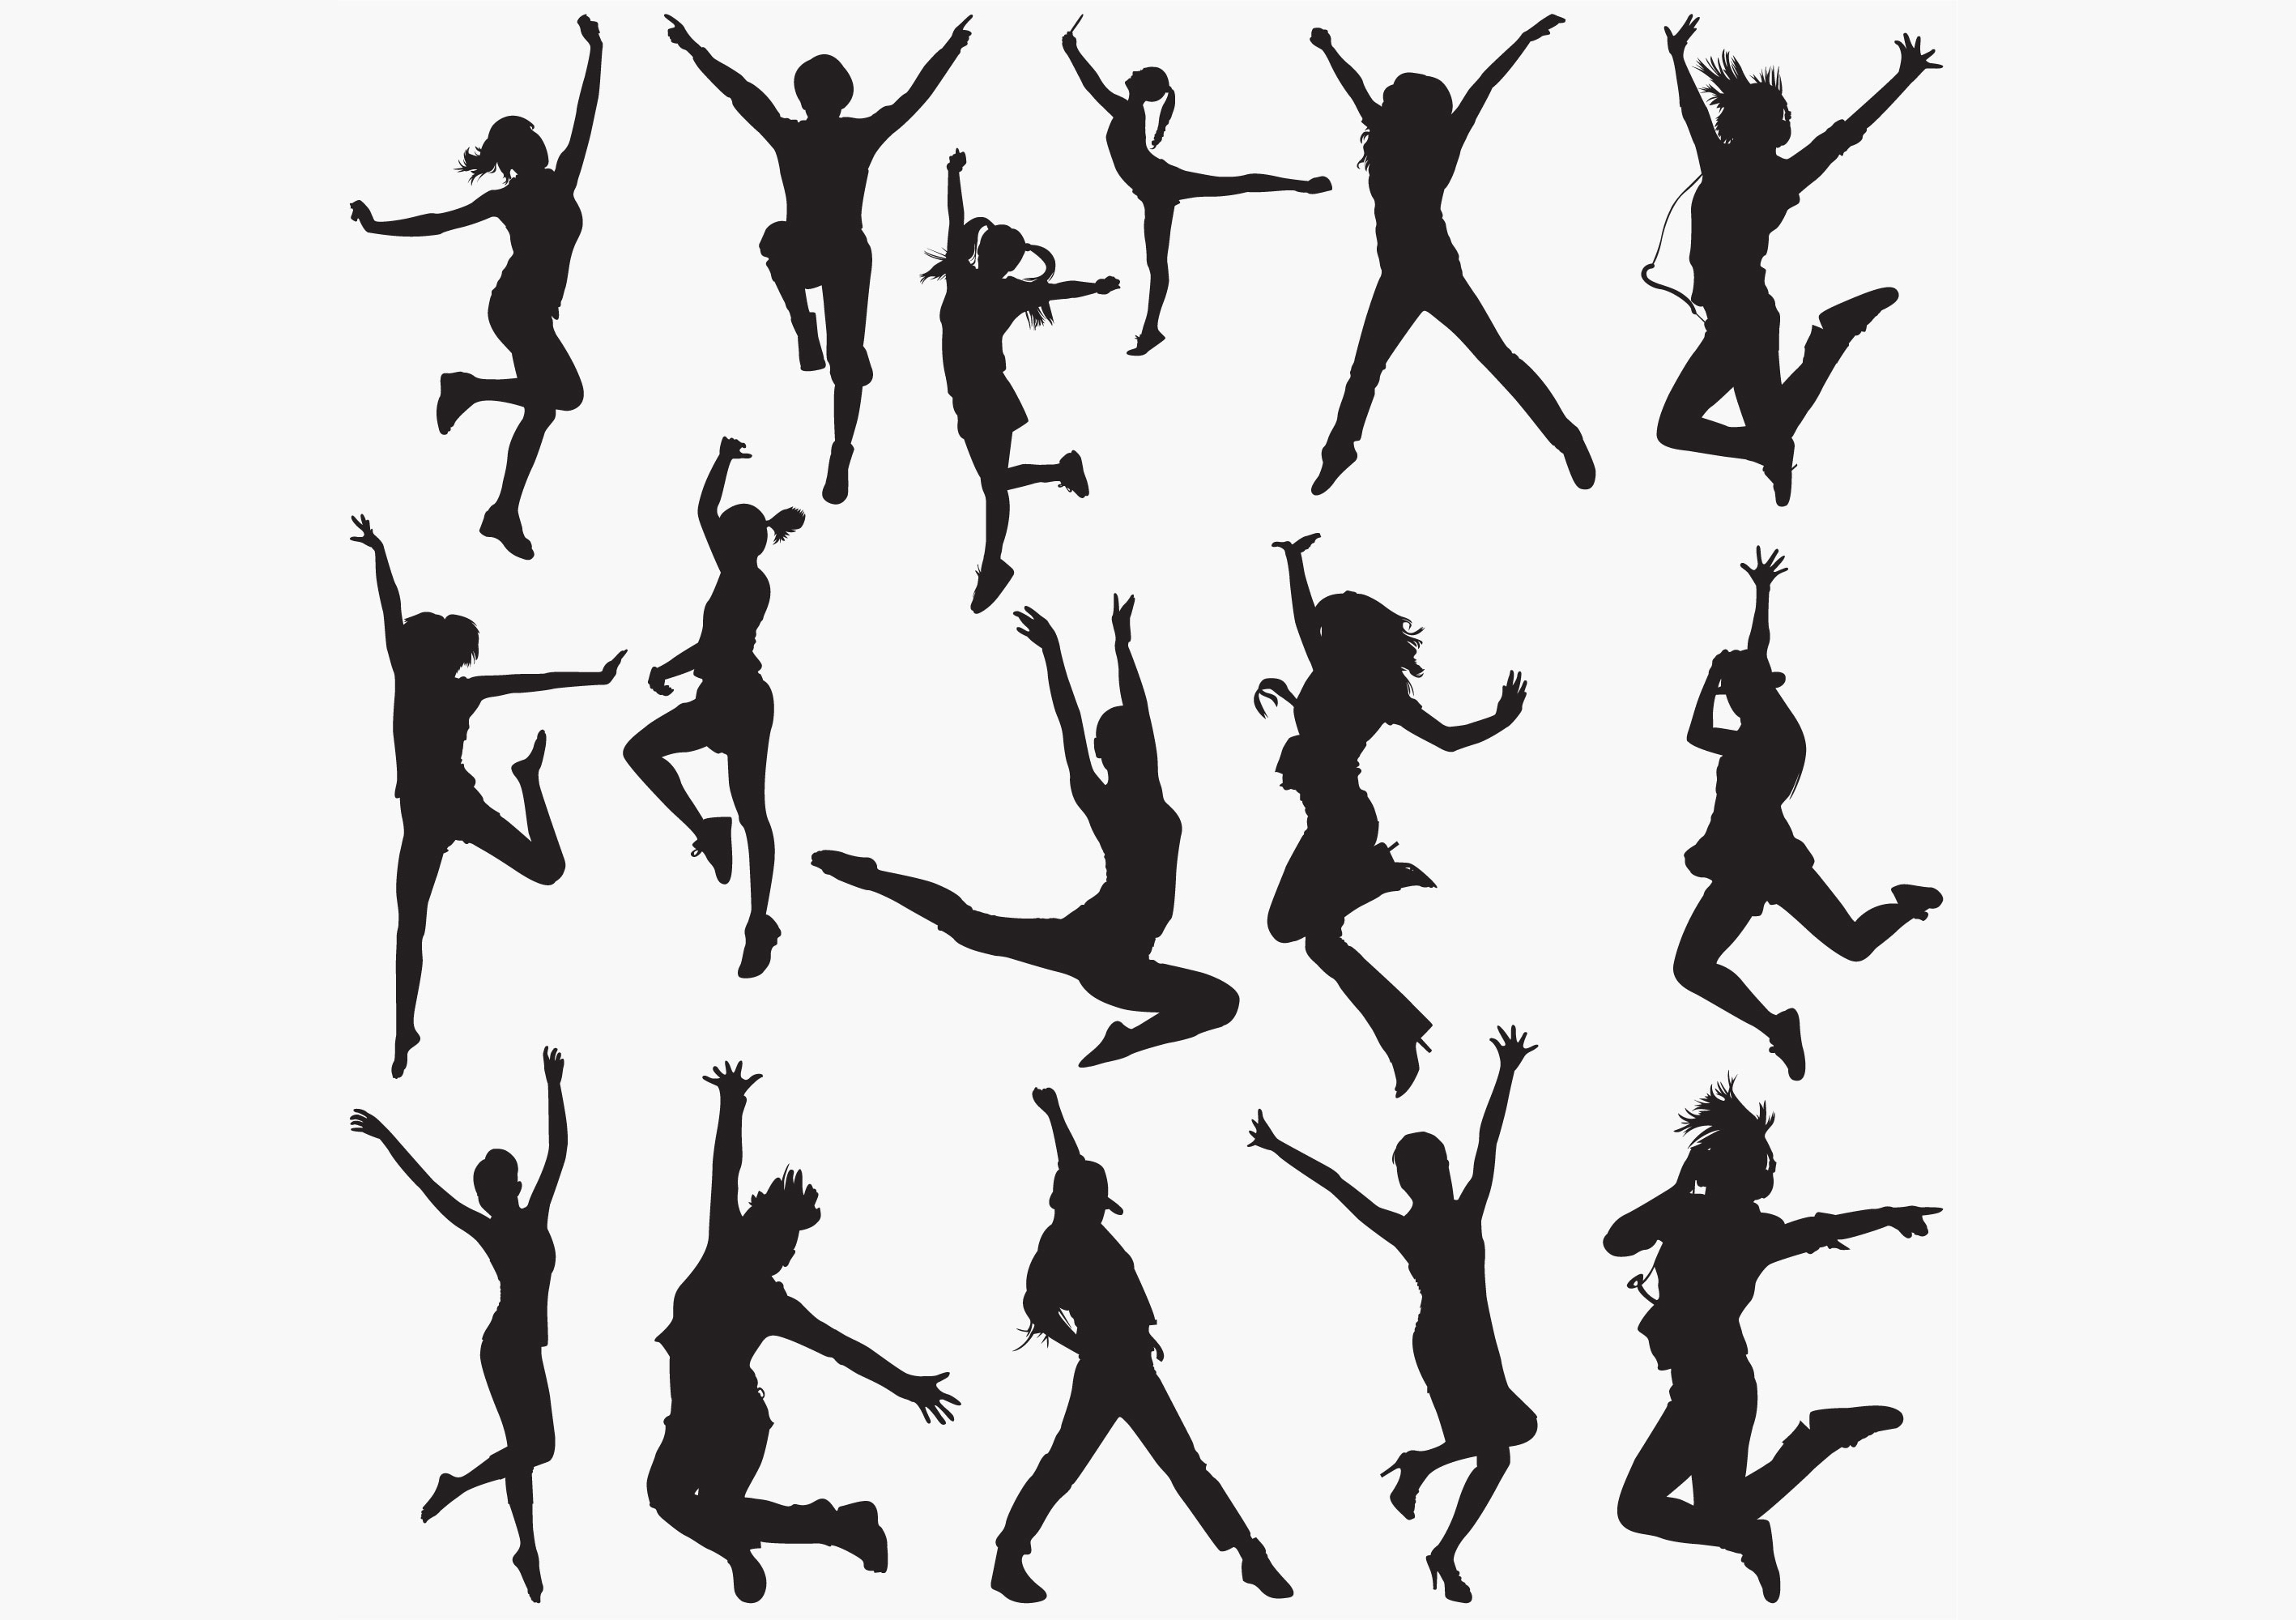 Download Free Dancing Silhouettes Graphic By Octopusgraphic Creative Fabrica for Cricut Explore, Silhouette and other cutting machines.